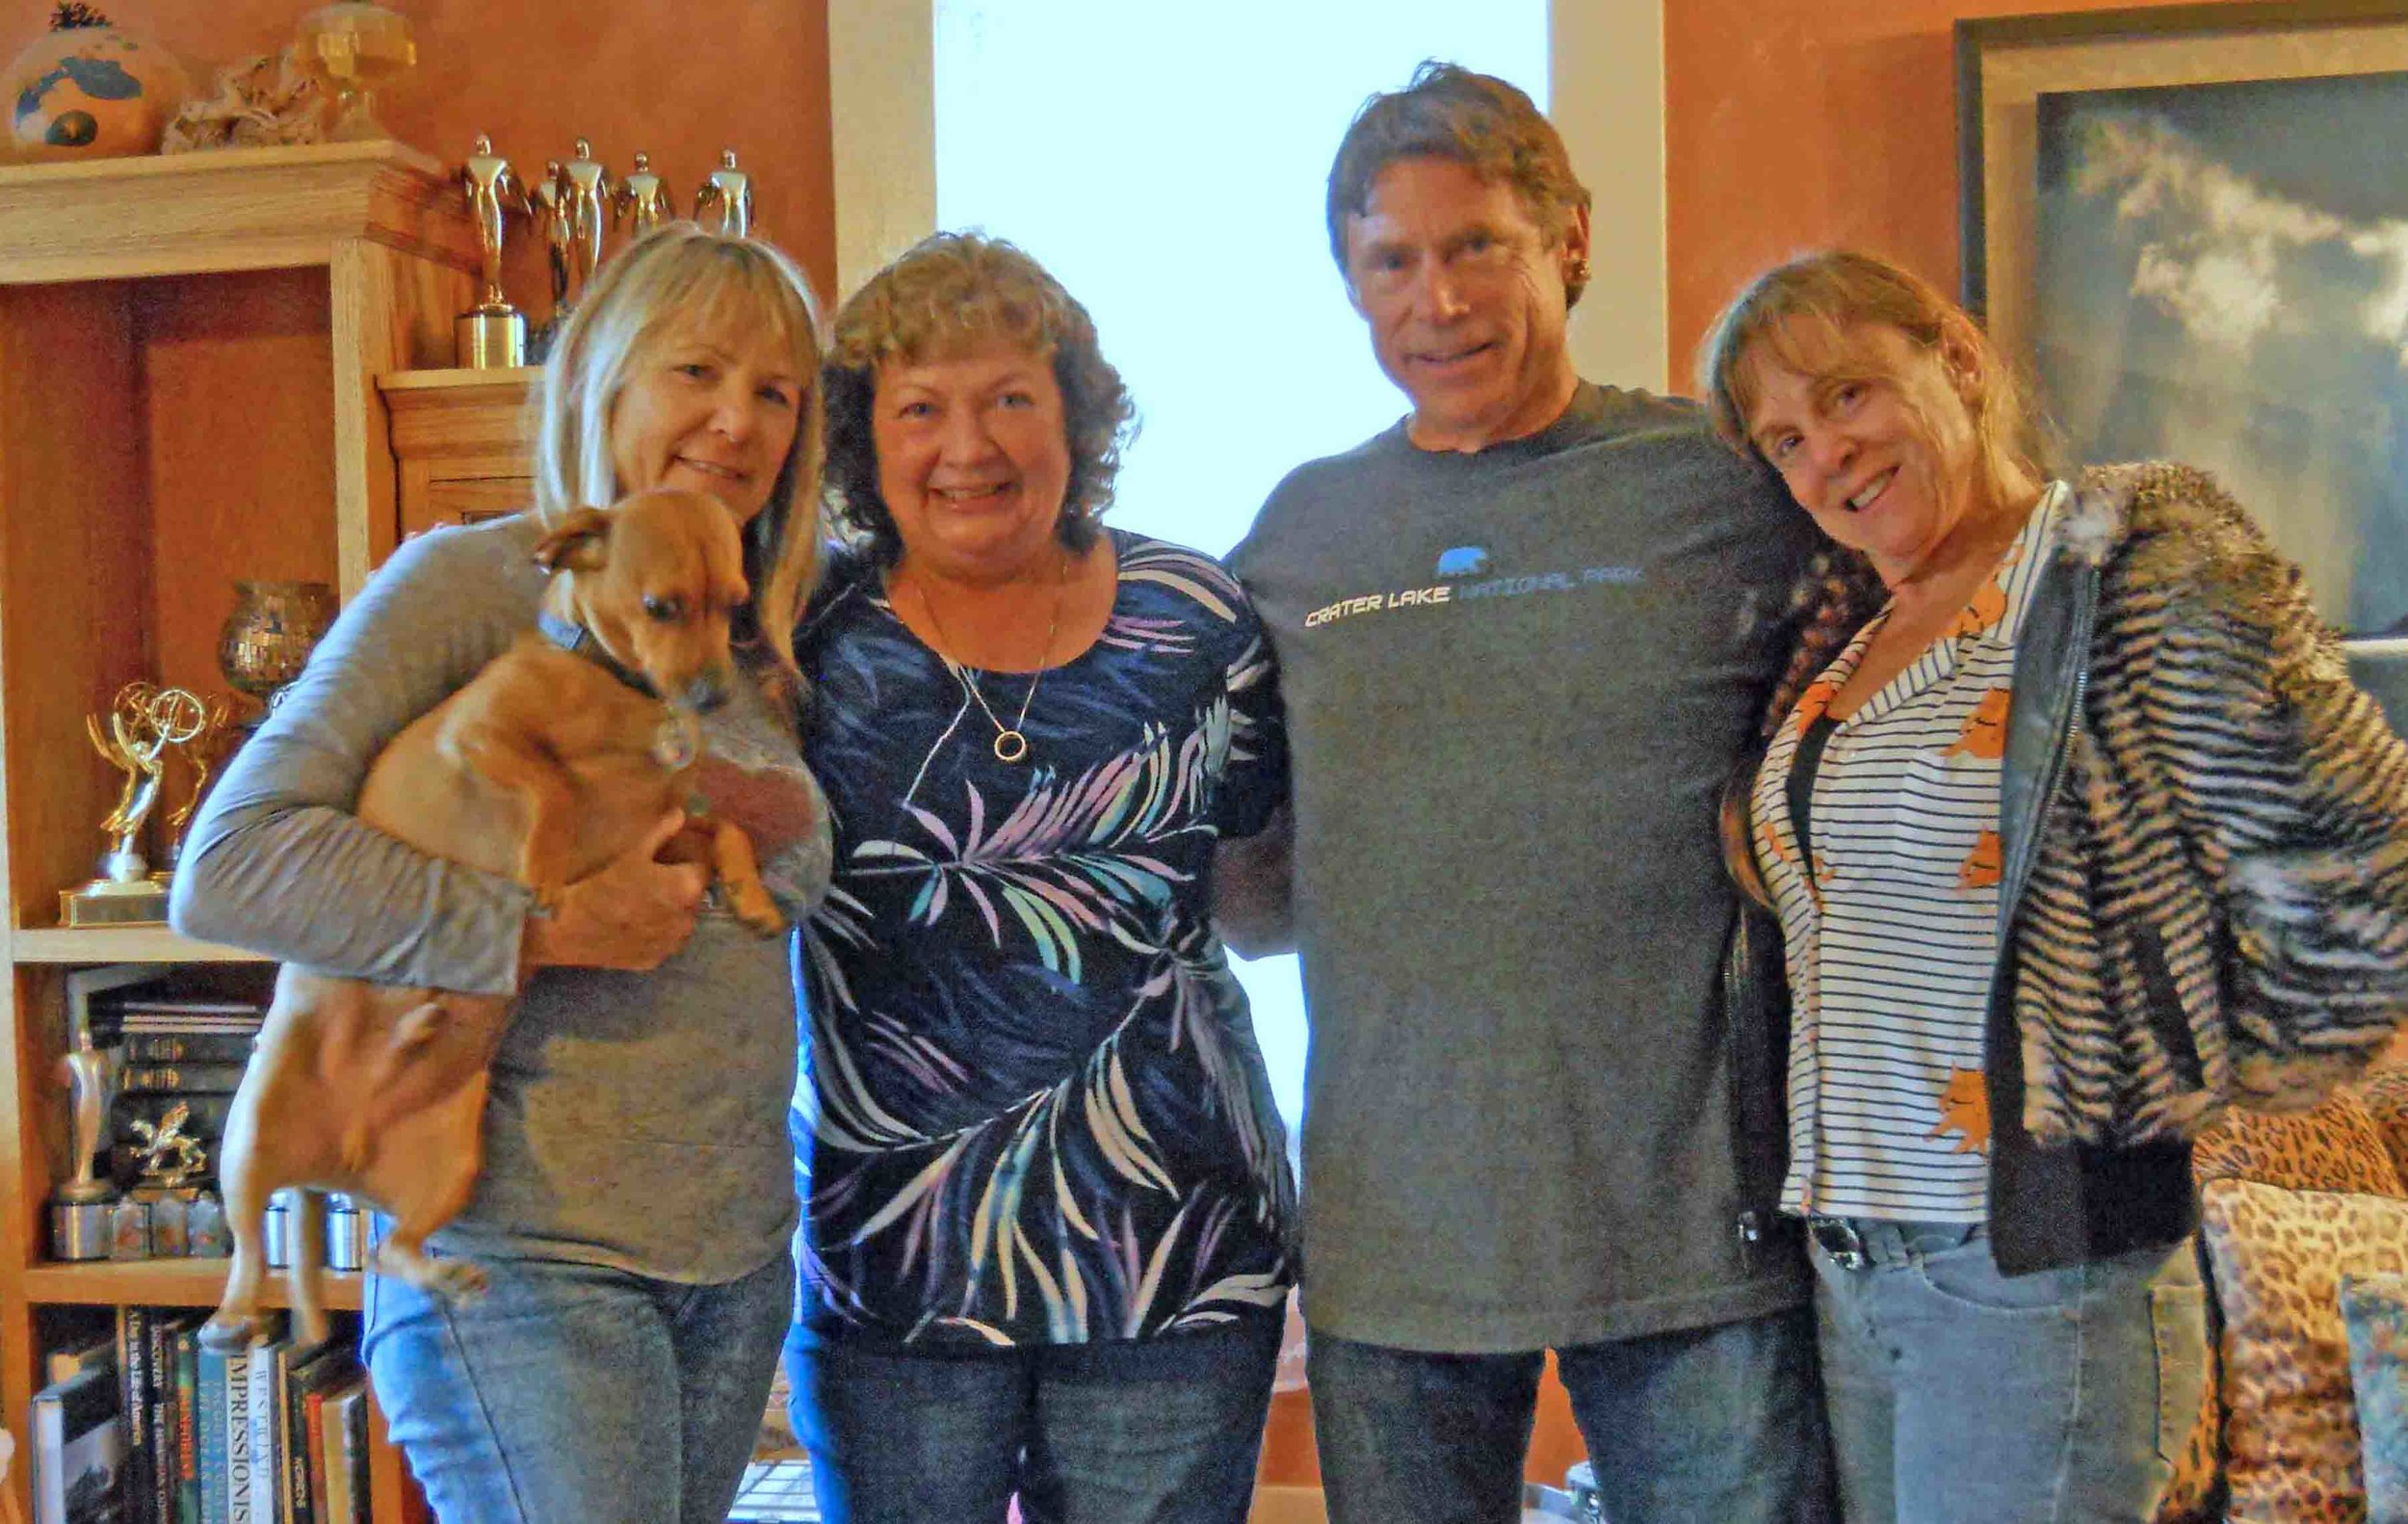 The people behind the dogs. Family members, left to right: Doodle, dog mom Barb, cousin Mel, Uncle Jerry, Aunt Danya. Photo: (c) Barb Ayers